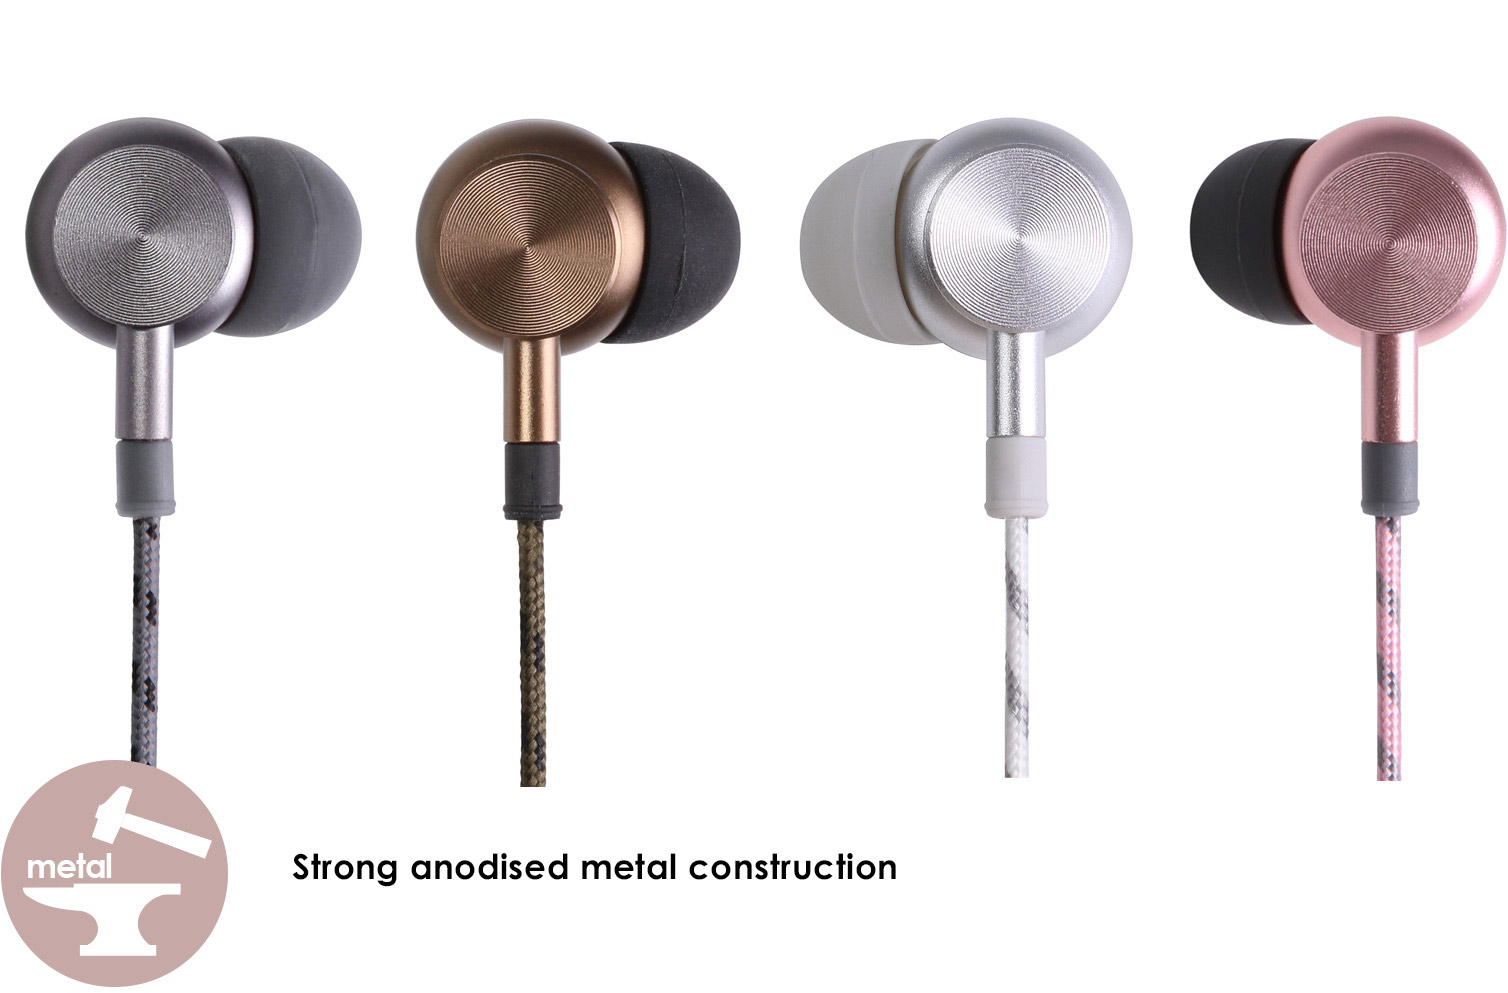 Stong anodized metal construction